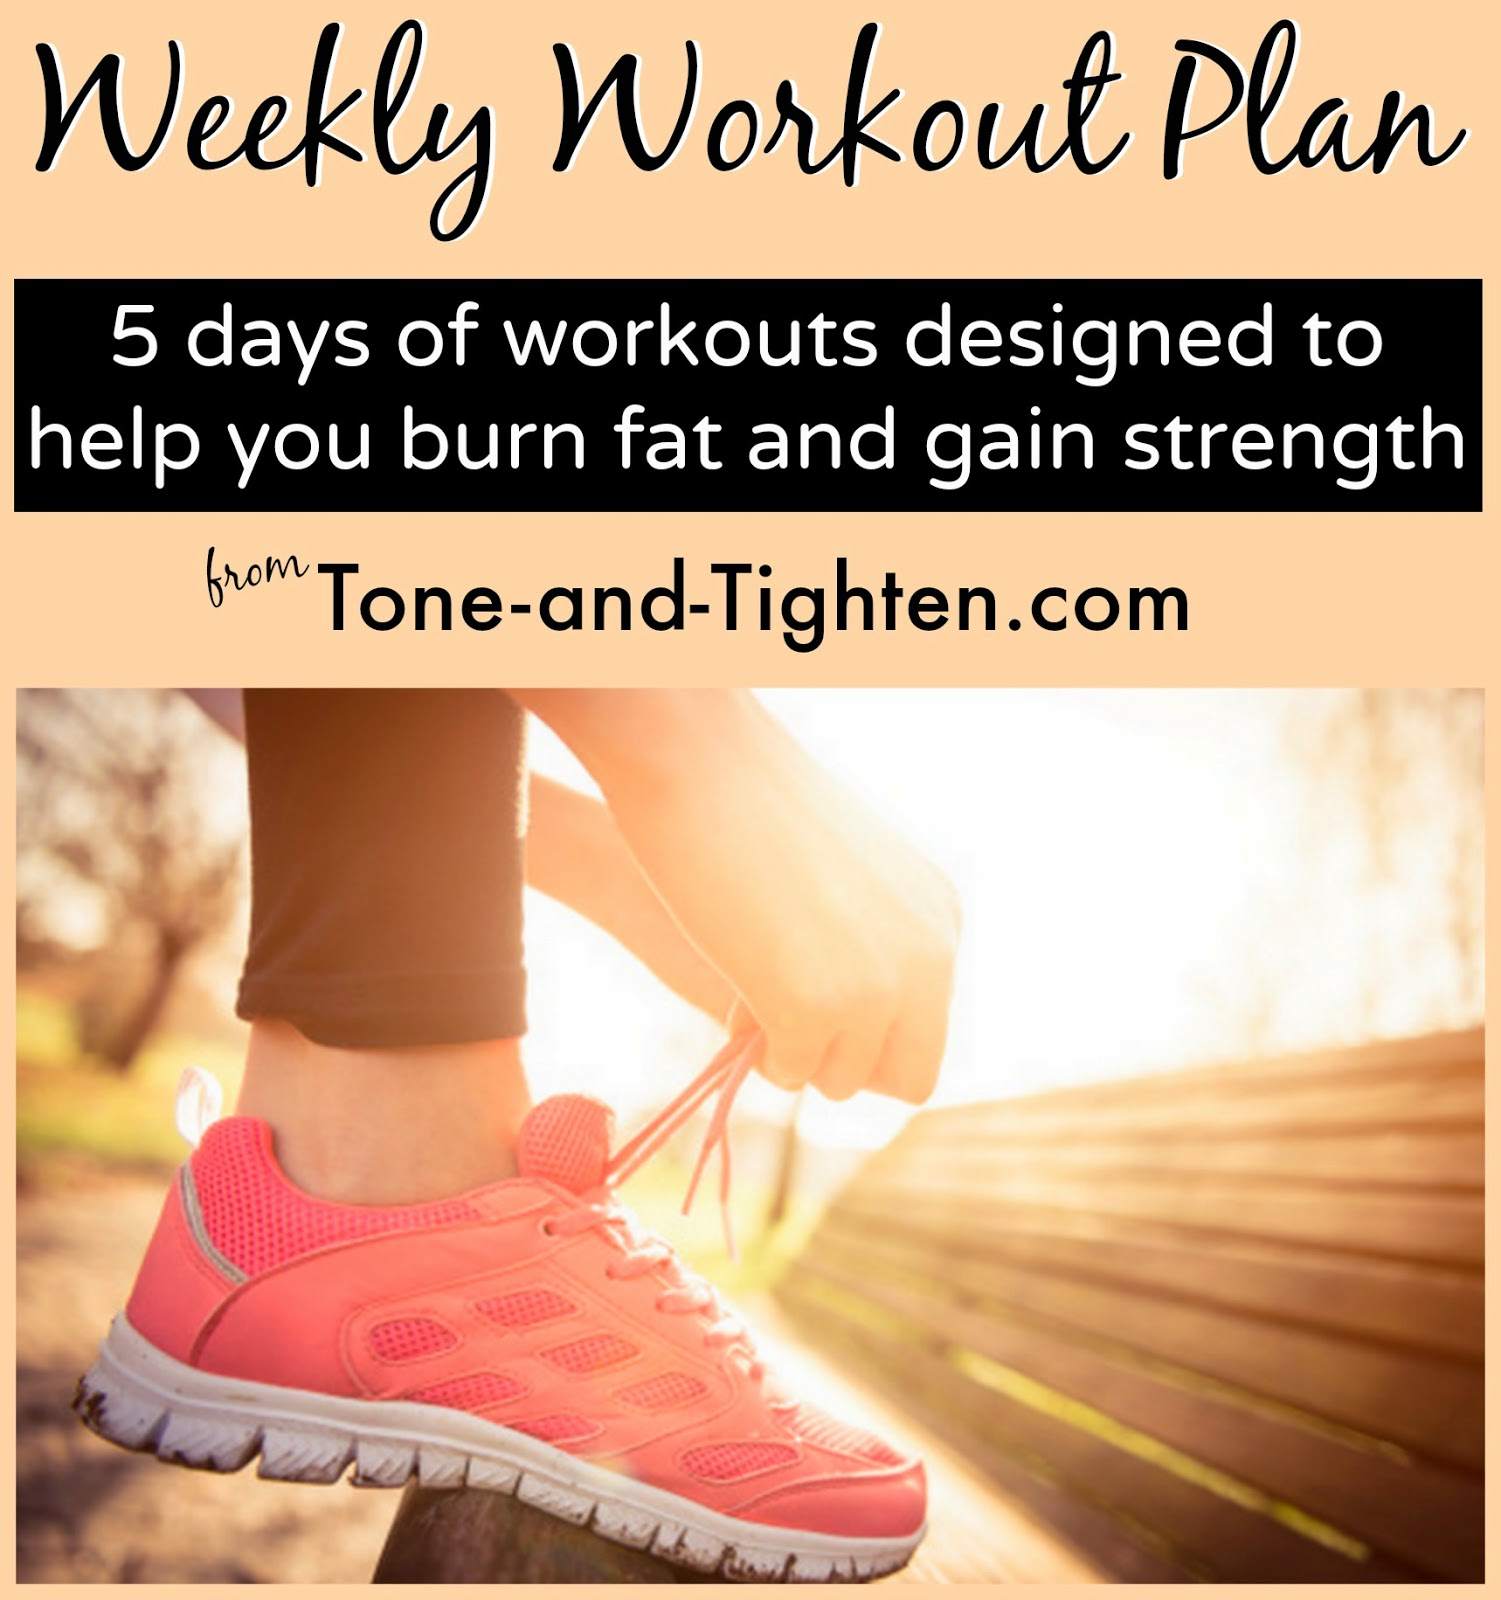 Weekly Workout Plan Best Workouts To Burn Fat And Gain Strength